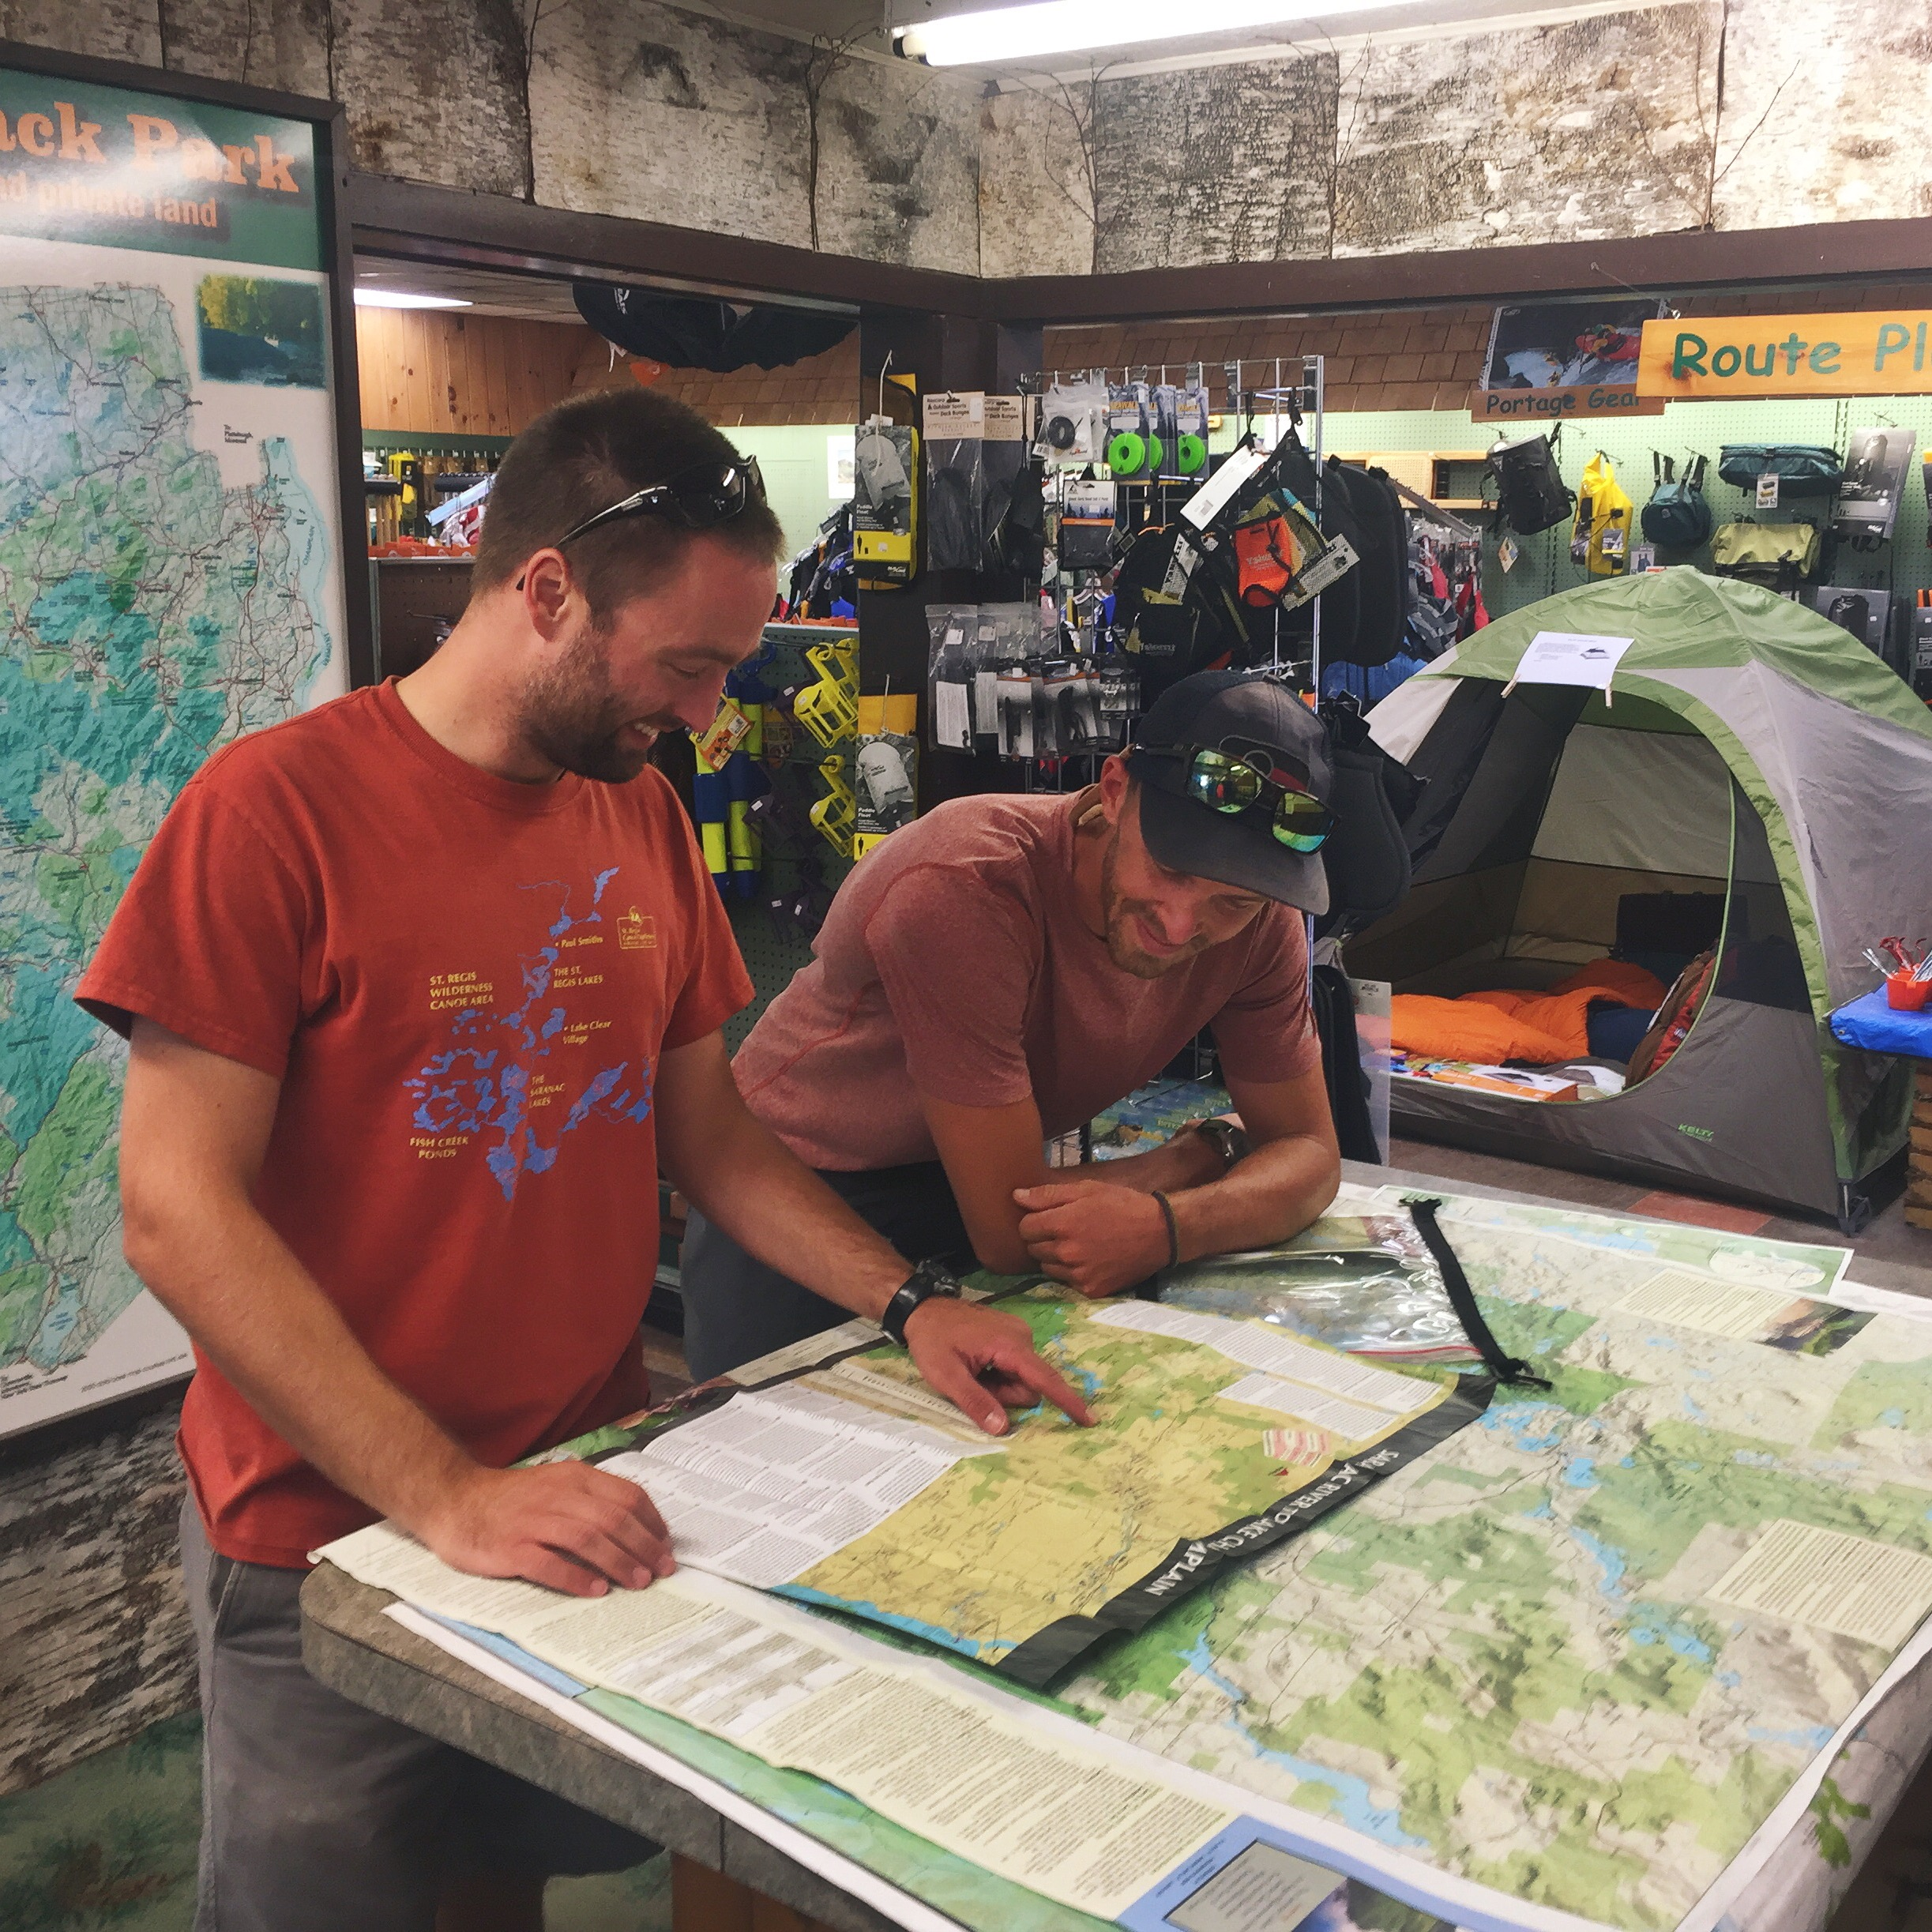 Tyler, the trail maintainer for section three, helps me lay out my travel plans for the next couple of days.